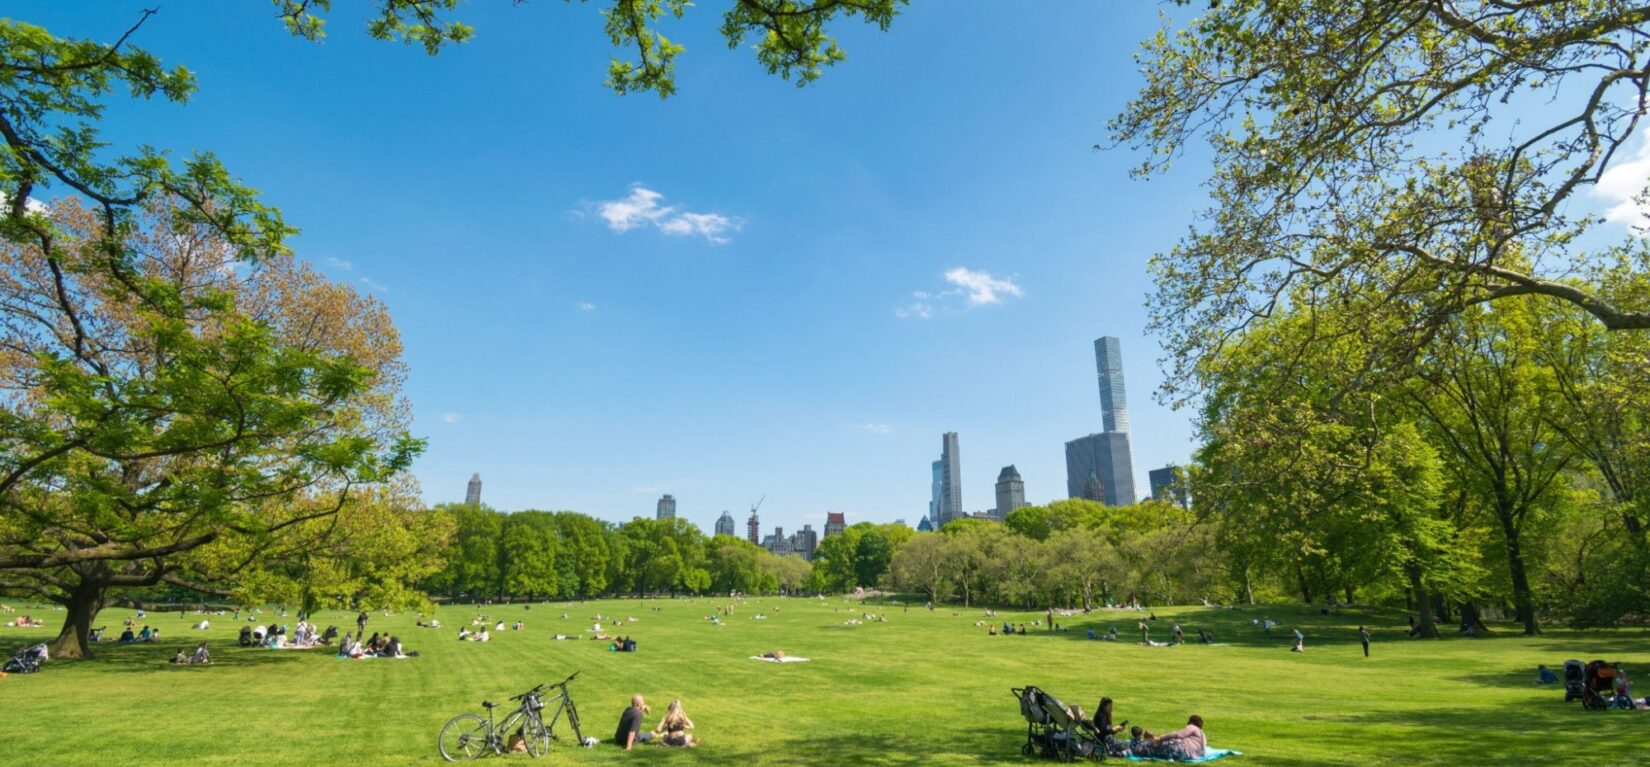 Park goers are scattered across the Sheep Meadow under a blue summer sky